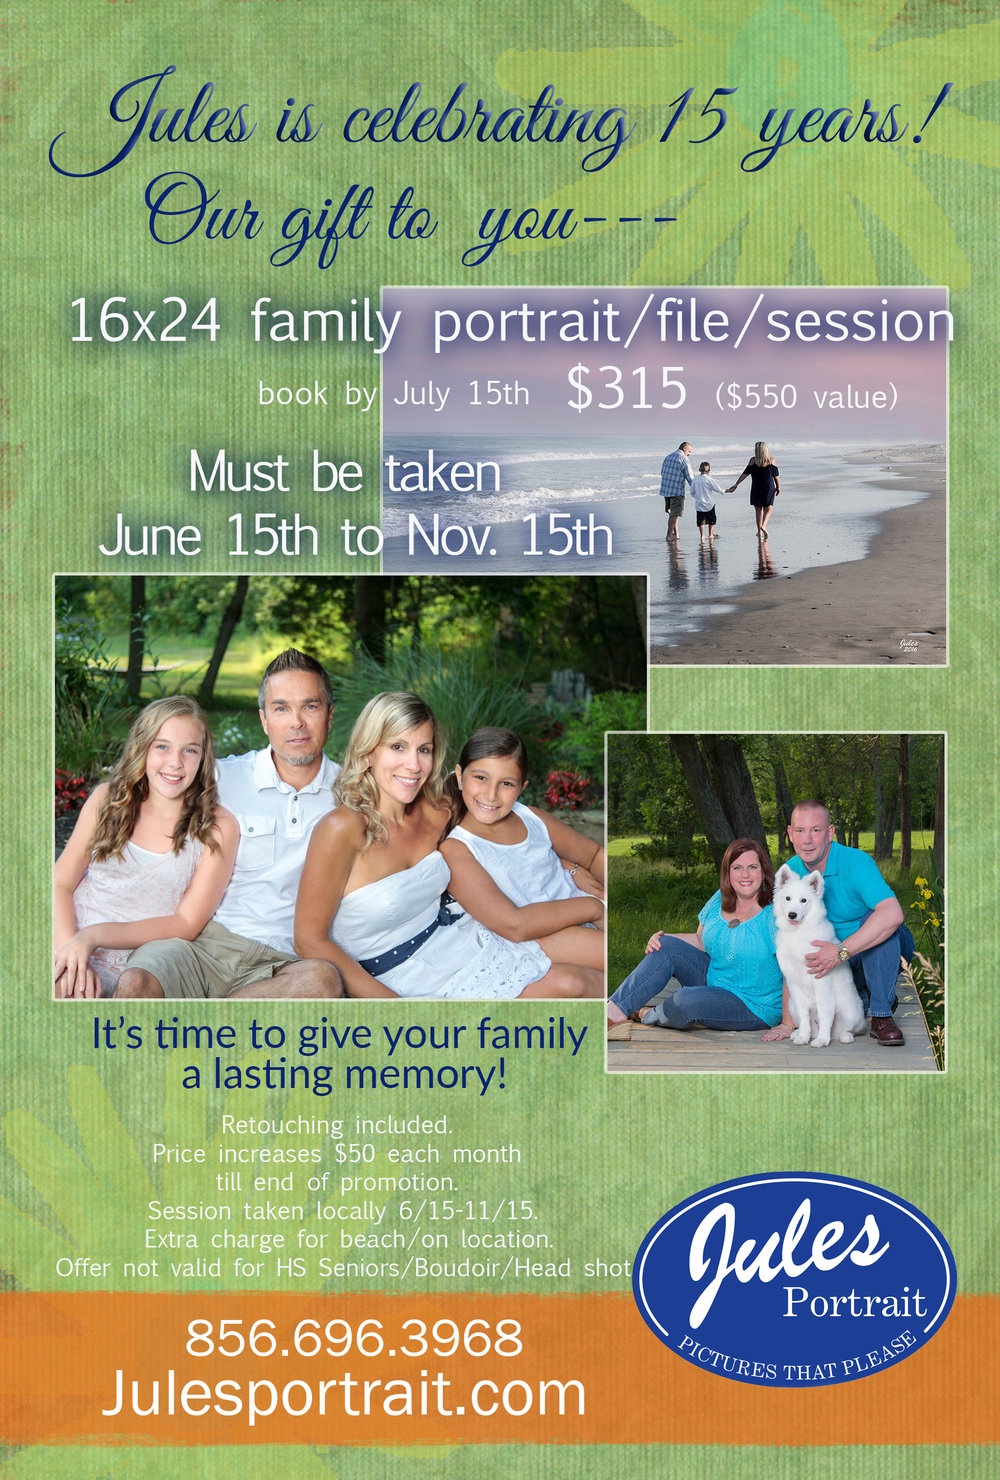 South-jersey-family-picture-specials-jules-ocean-cherry-hill-vineland-new-jersey